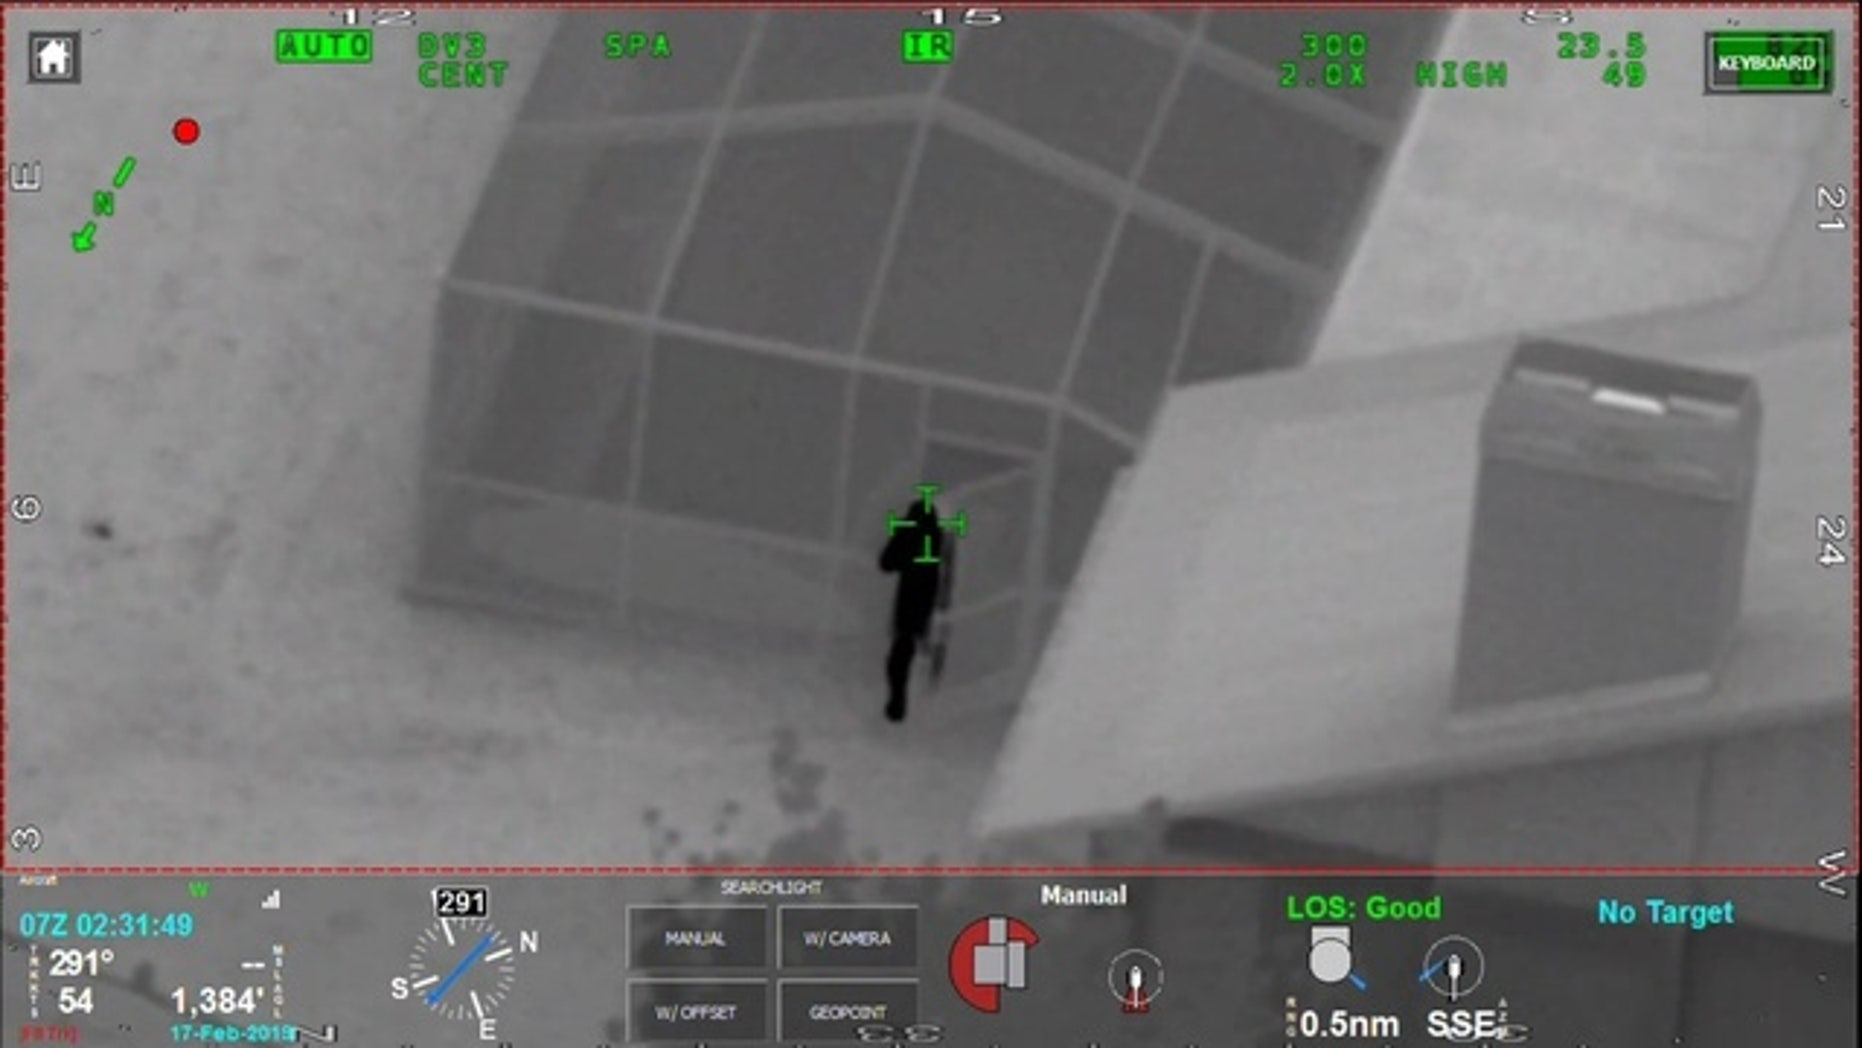 Florida man accused of pointing red laser at sheriff's helicopter